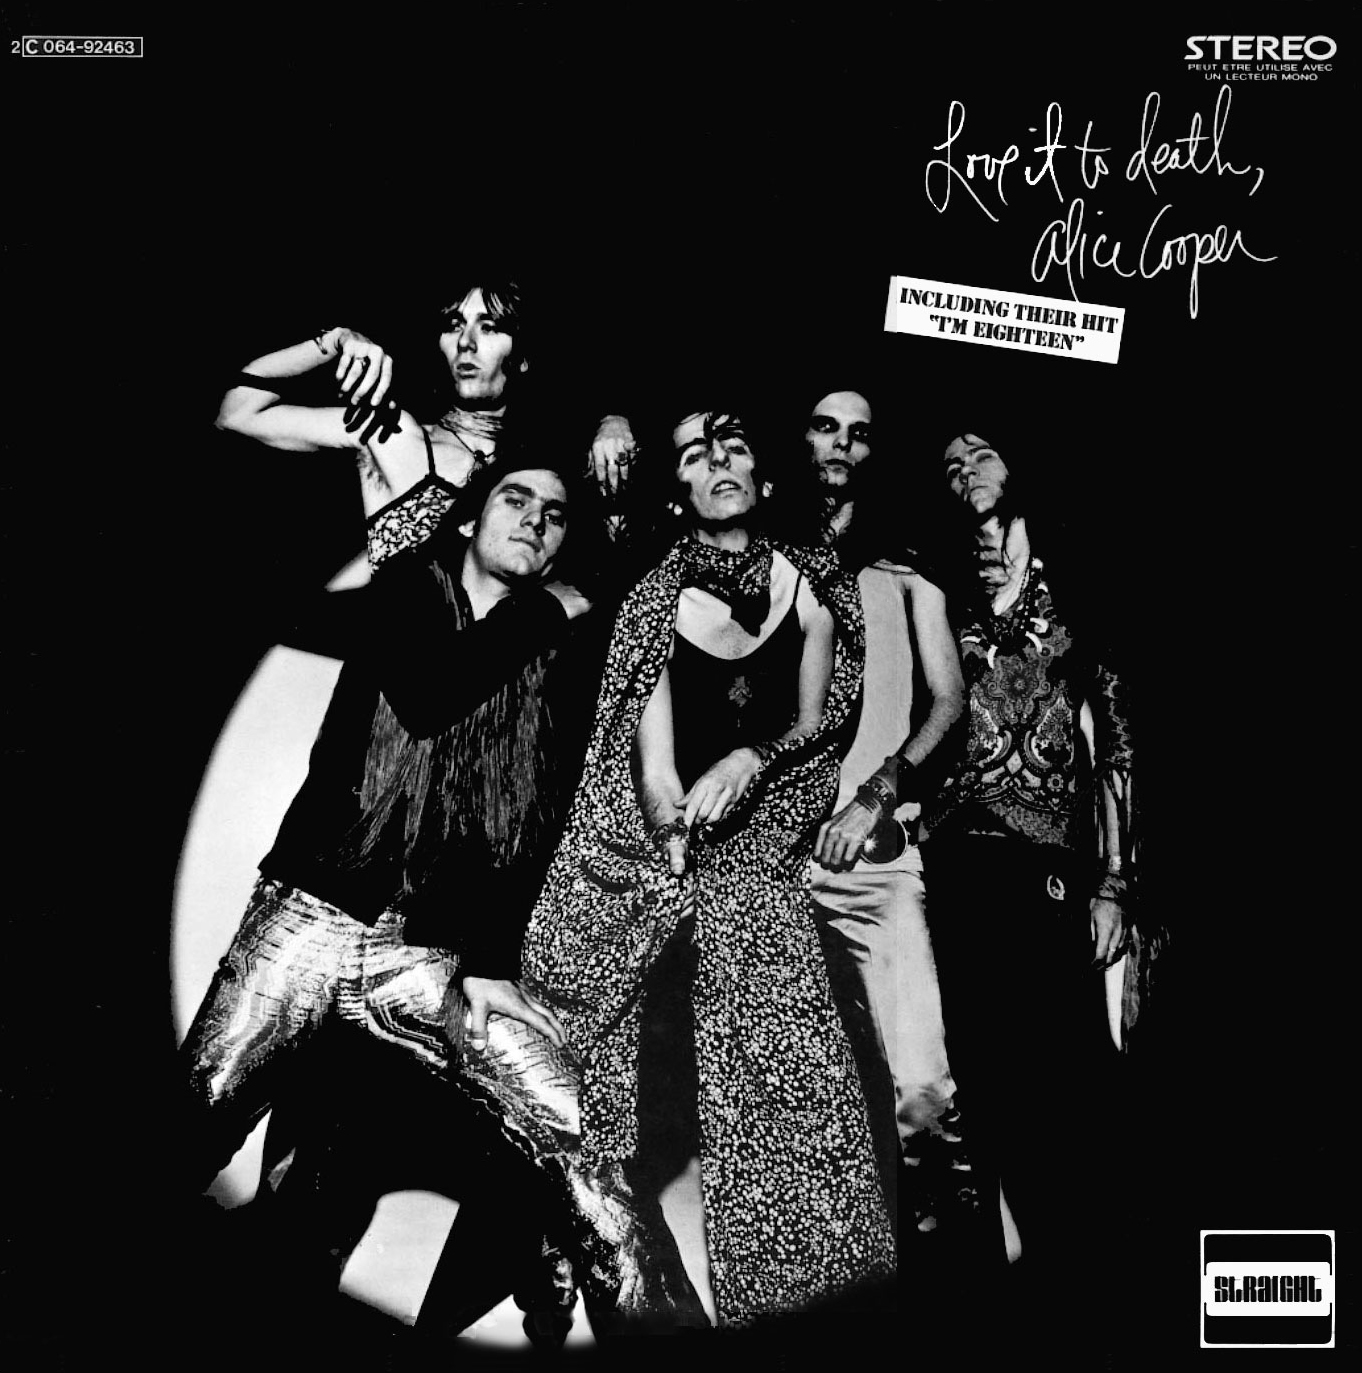 Alice Cooper - Love It to Death - album cover